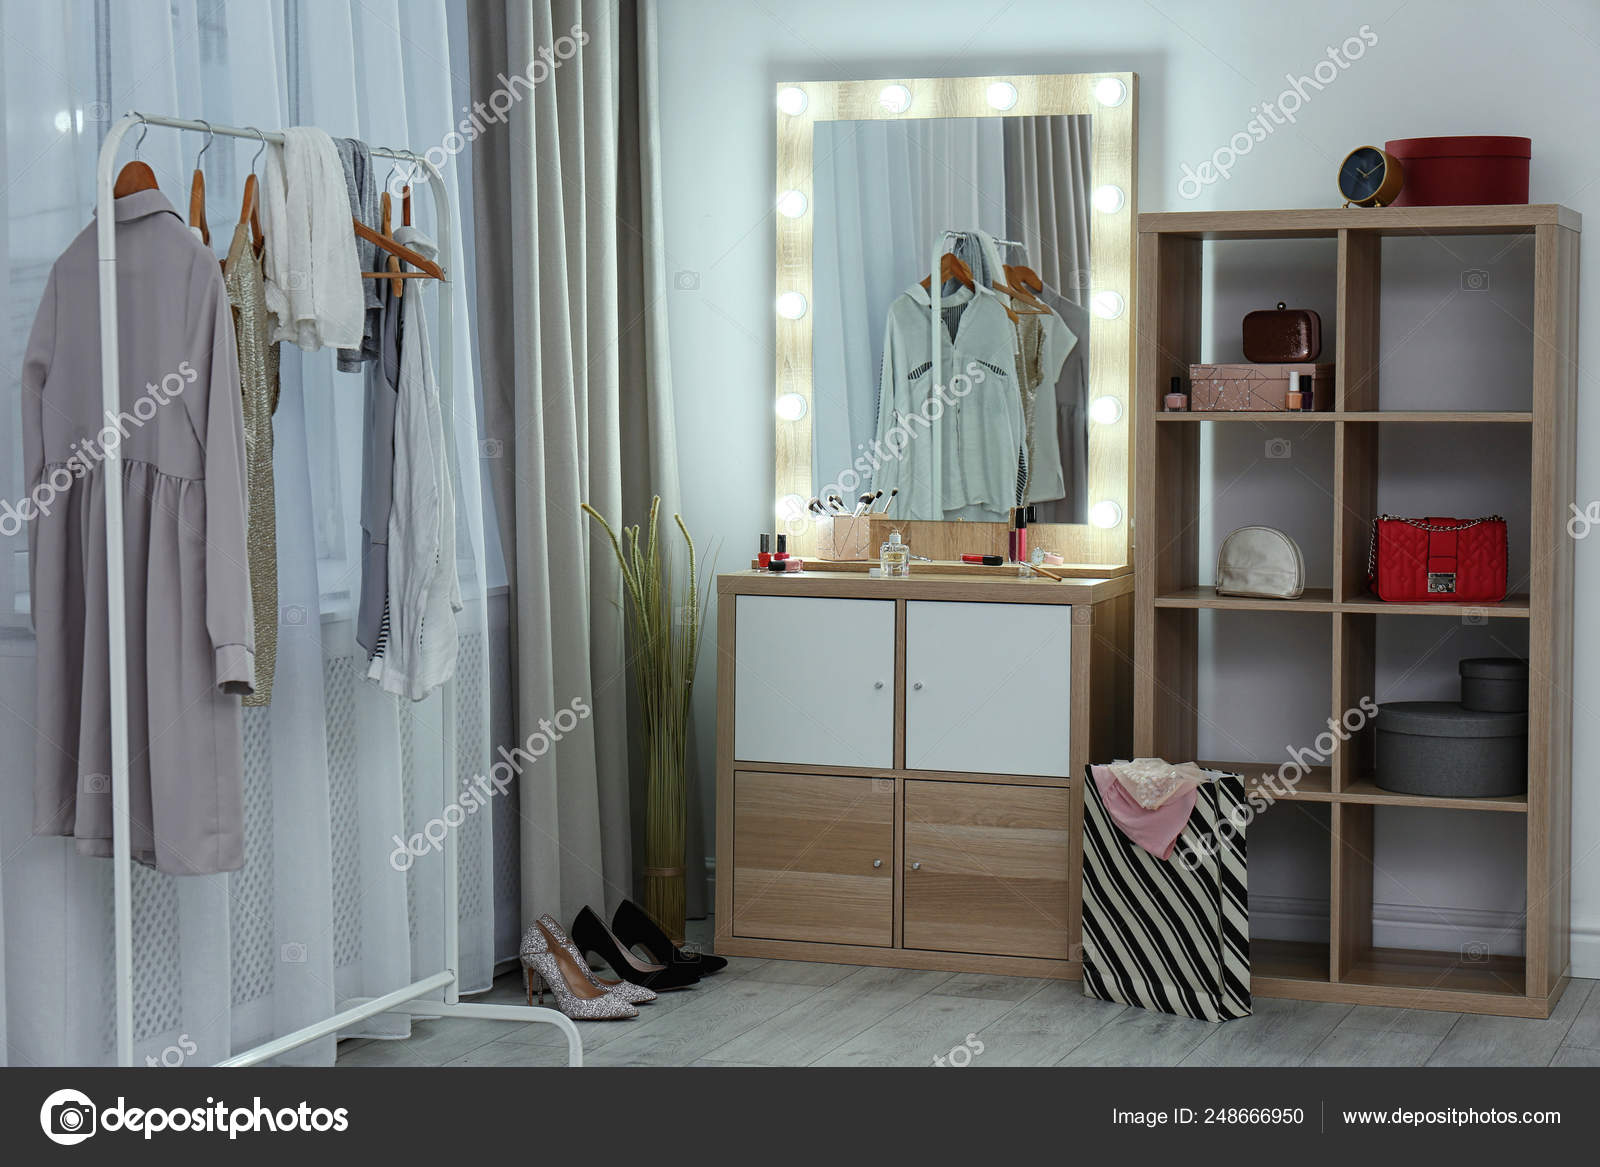 Dressing Room Interior With Makeup Mirror Wardrobe Rack And Shelving Unit Stock Photo C Liudmilachernetska Gmail Com 248666950